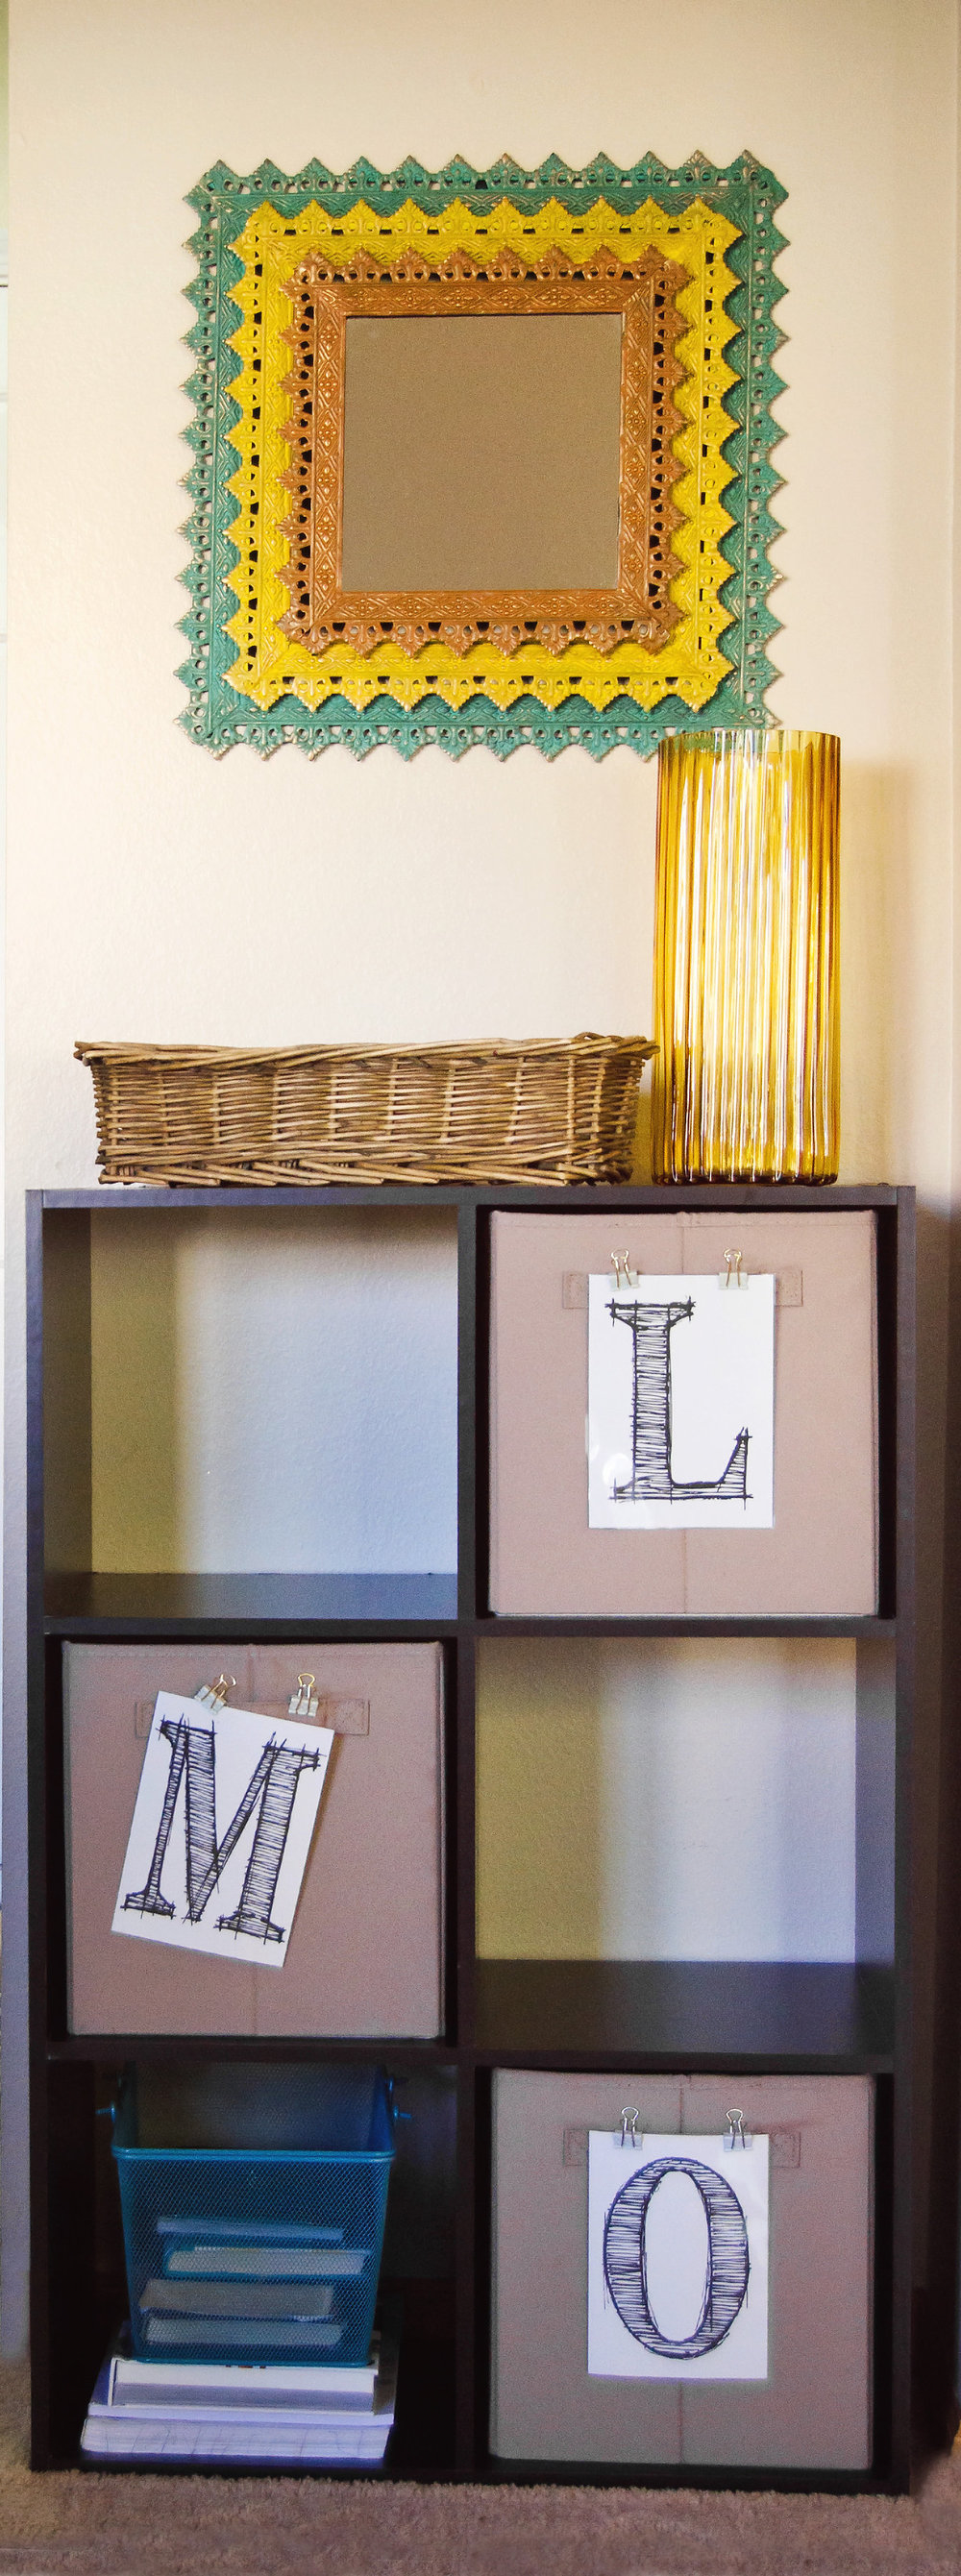 Organization cubby with initials. | hprallandco.com